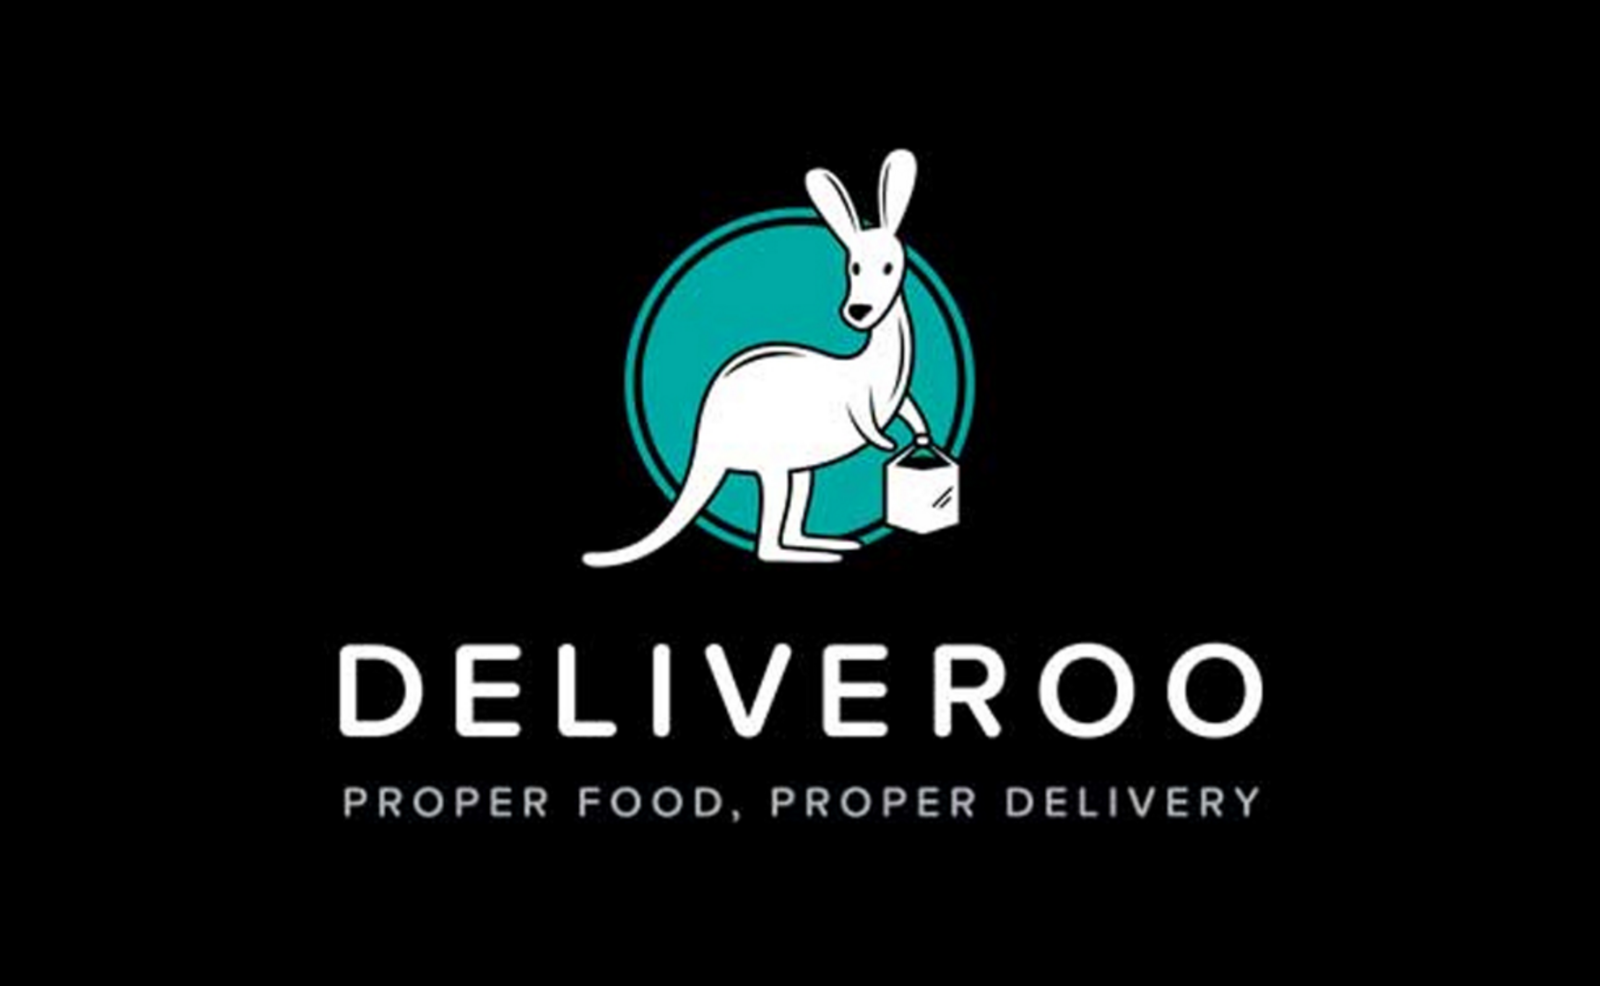 £25 Deliveroo voucher coupon discount code: mandeepk8623 No purchase required❤️